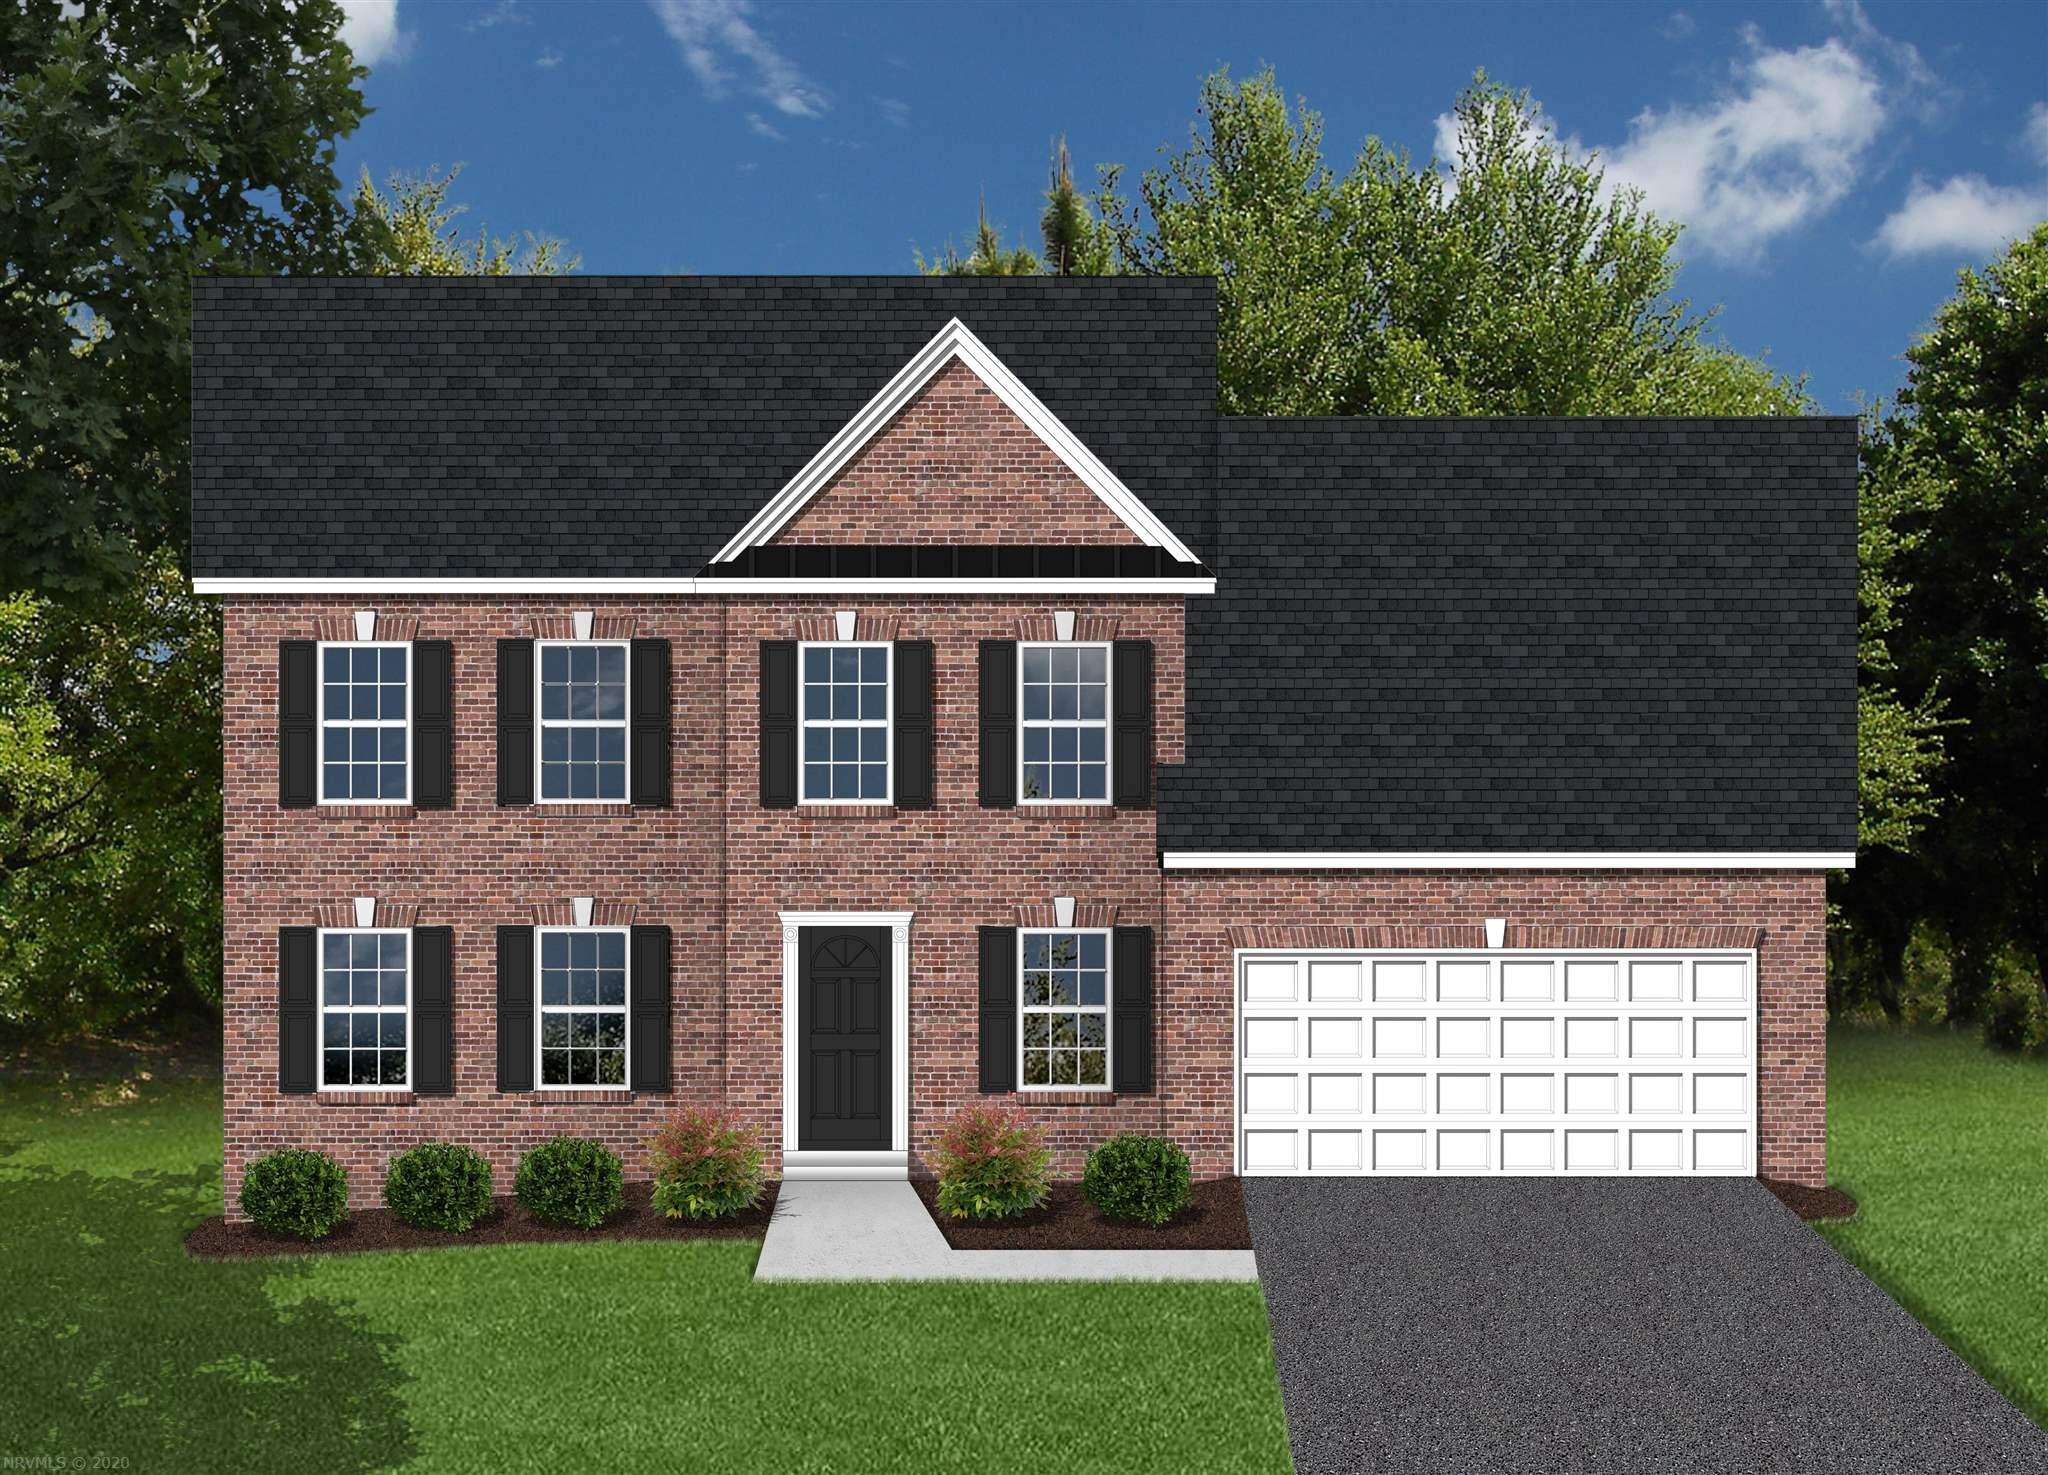 This is a pre-construction listing that is not yet built. Our Williamsburg Option 3 style home offers 2,131 square feet above grade, and 9' framed walls on first floor with smooth drywall finish. This house plan incorporates hardwoods in the foyer, dining, kitchen and half bath, ceramic tile in the baths and laundry, and carpet throughout remaining areas. Oak treads to the second floor where applicable.  The master shower offers ceramic tiled walls!  Premium Tahoe cabinets by Timberlake in the kitchen make the home even more beautiful. The kitchen counter tops are luxurious granite and the bathrooms are cultured marble. Crown molding can be found in the dining room and master bedroom, as well as chair rail with wainscoting in the dining room. The exterior finishes consist of double-hung windows, brick, siding, and architectural shingles. Kensington is conveniently located in Christiansburg off Mud Pike Road and is adjacent the Christiansburg Middle School.